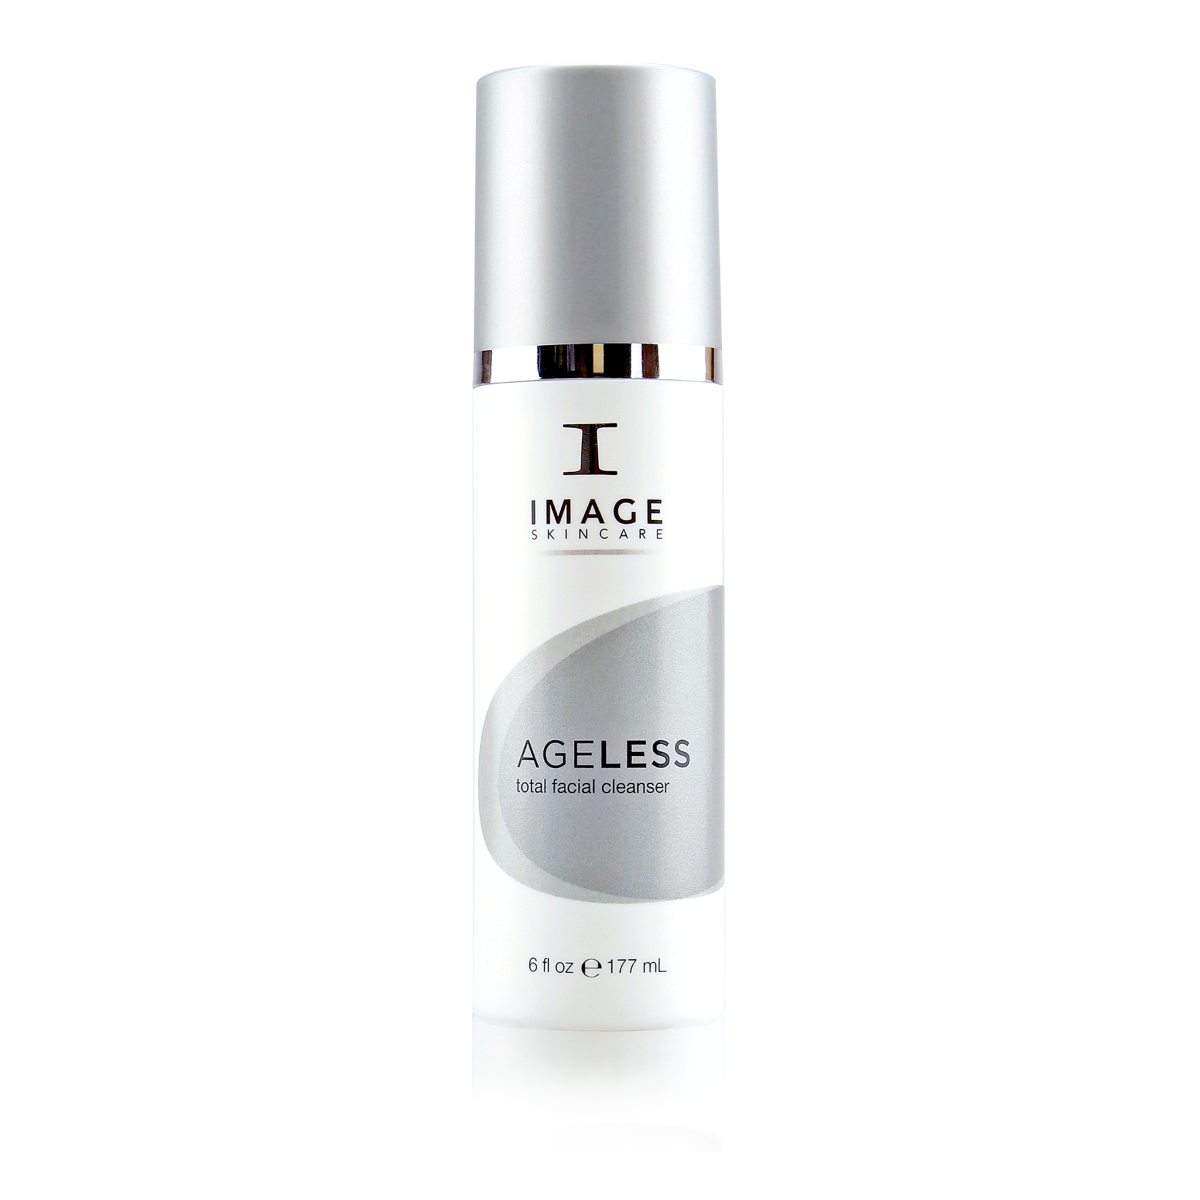 IMAGE_Ageless_Total_Facial_Cleanser